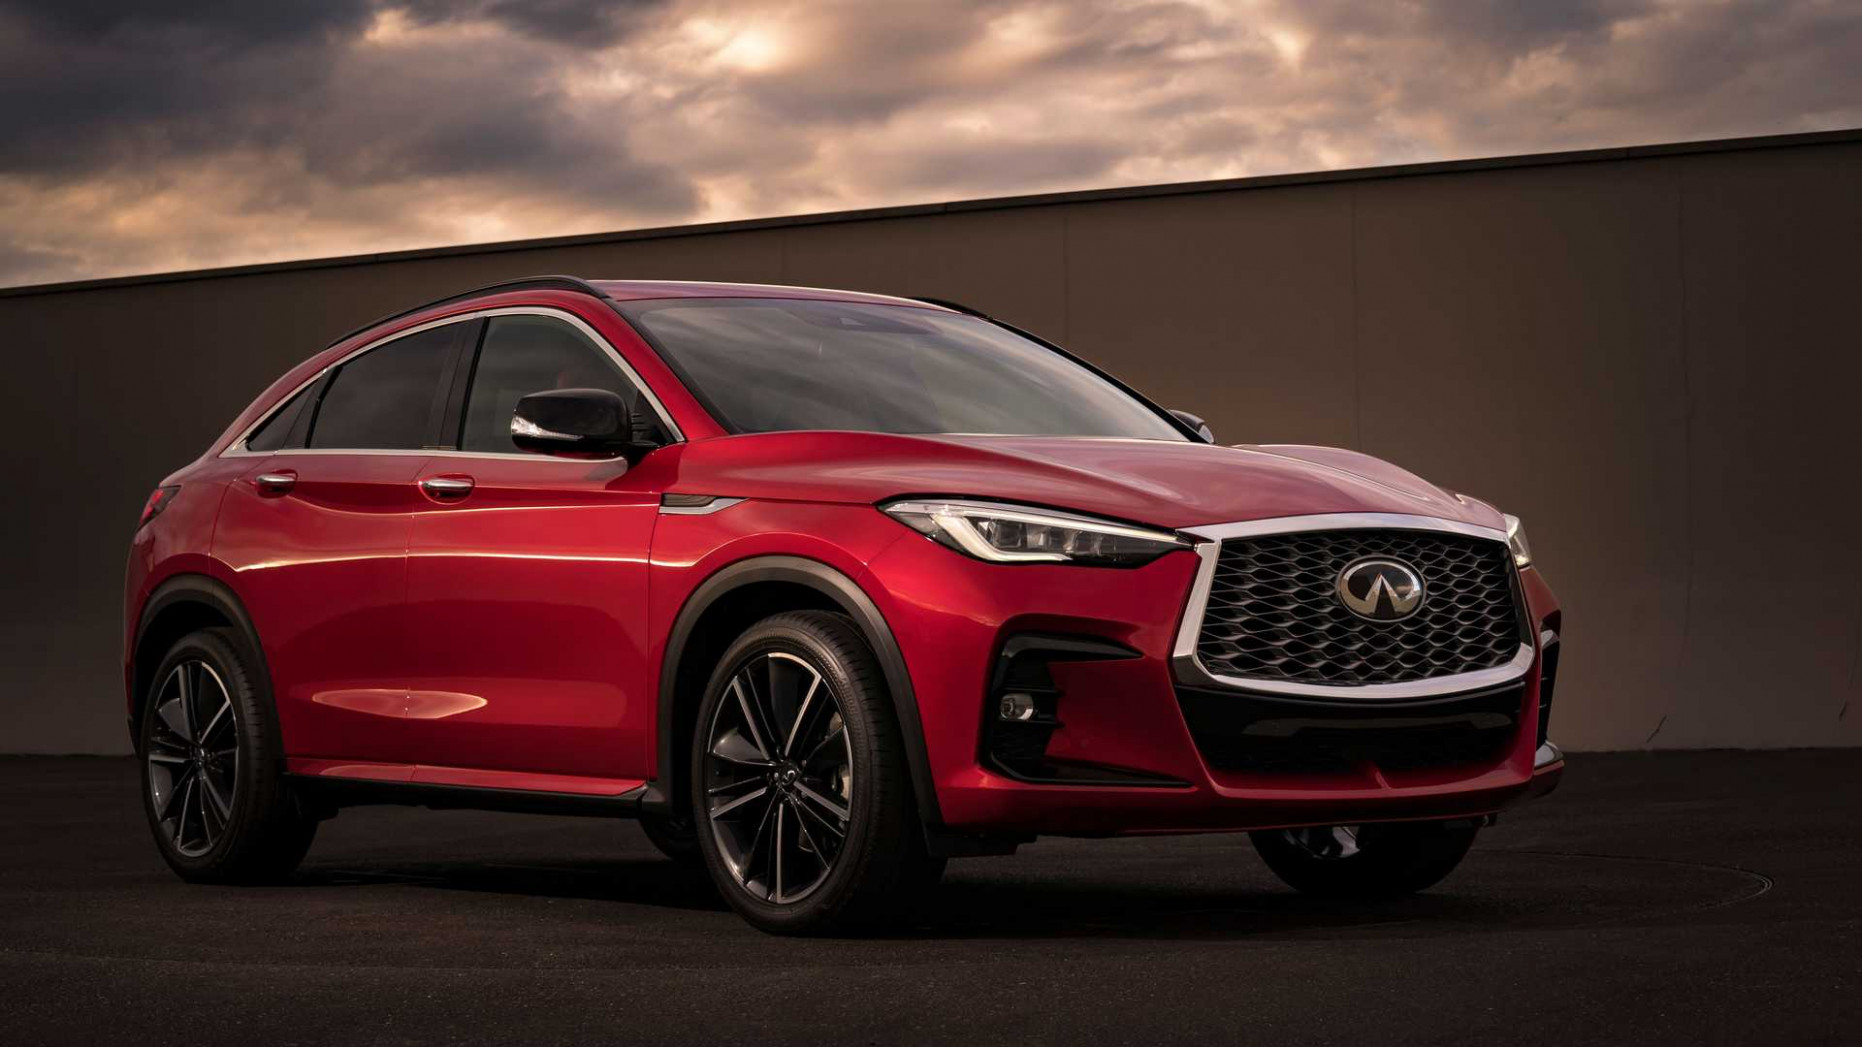 Redesign and Review 2022 Infiniti Q70 Spy Photos